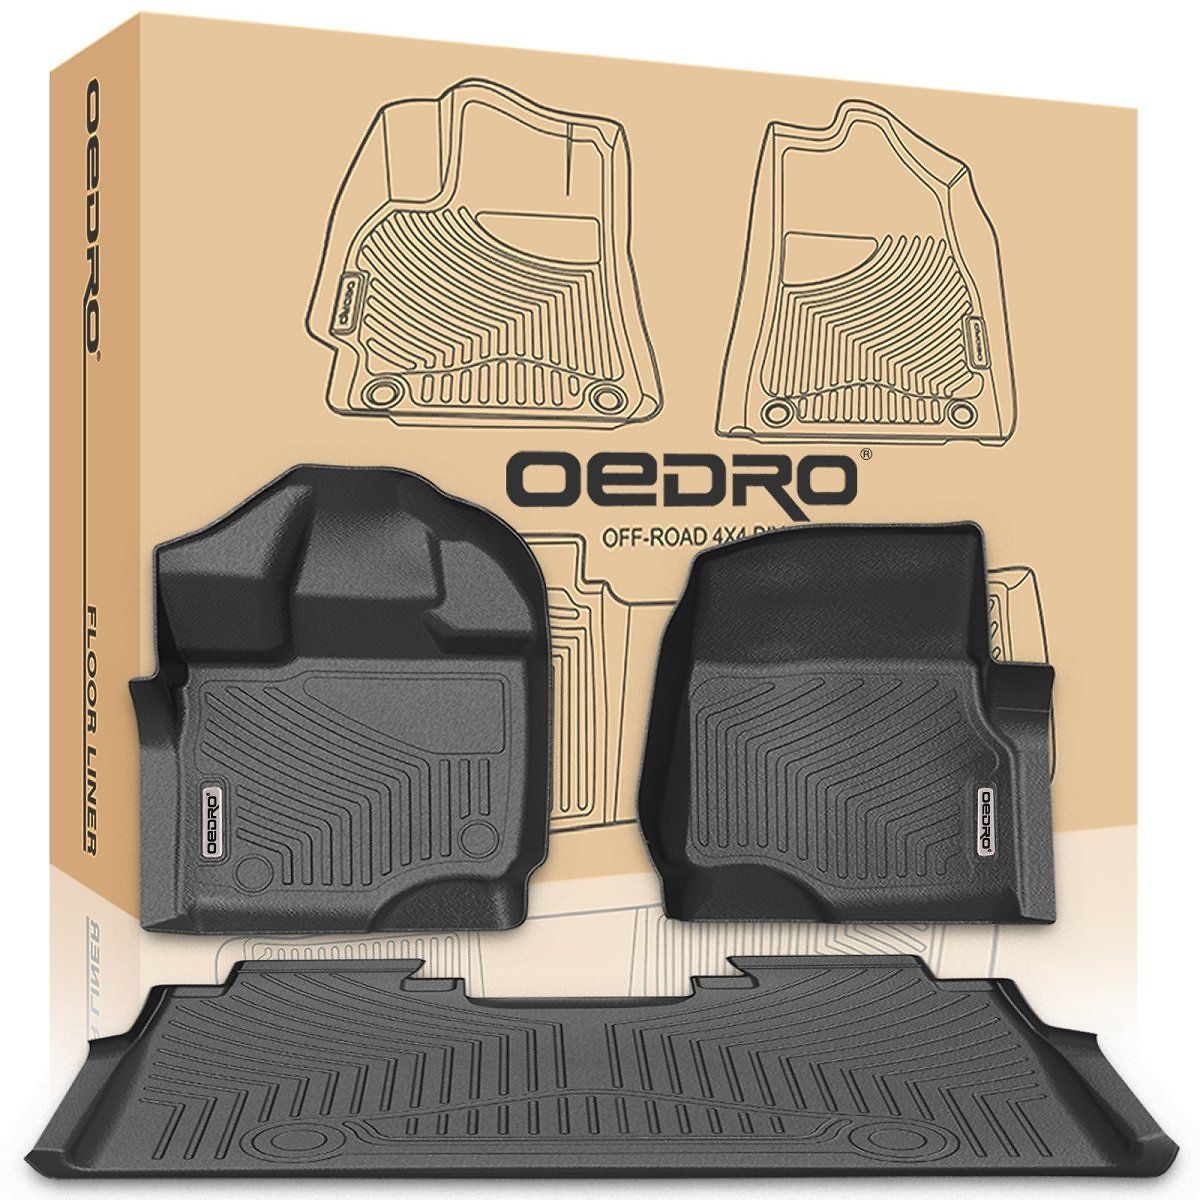 OEdRo 2015-2018 Ford F-150 Floor Mats Crew Cab - Unique Black TPE All-Weather Guard, Includes 1st & 2nd Row Front and Rear Floor Liner Full Set 1st Row Bucket Seating (Fits Supercrew Cab Models Only)